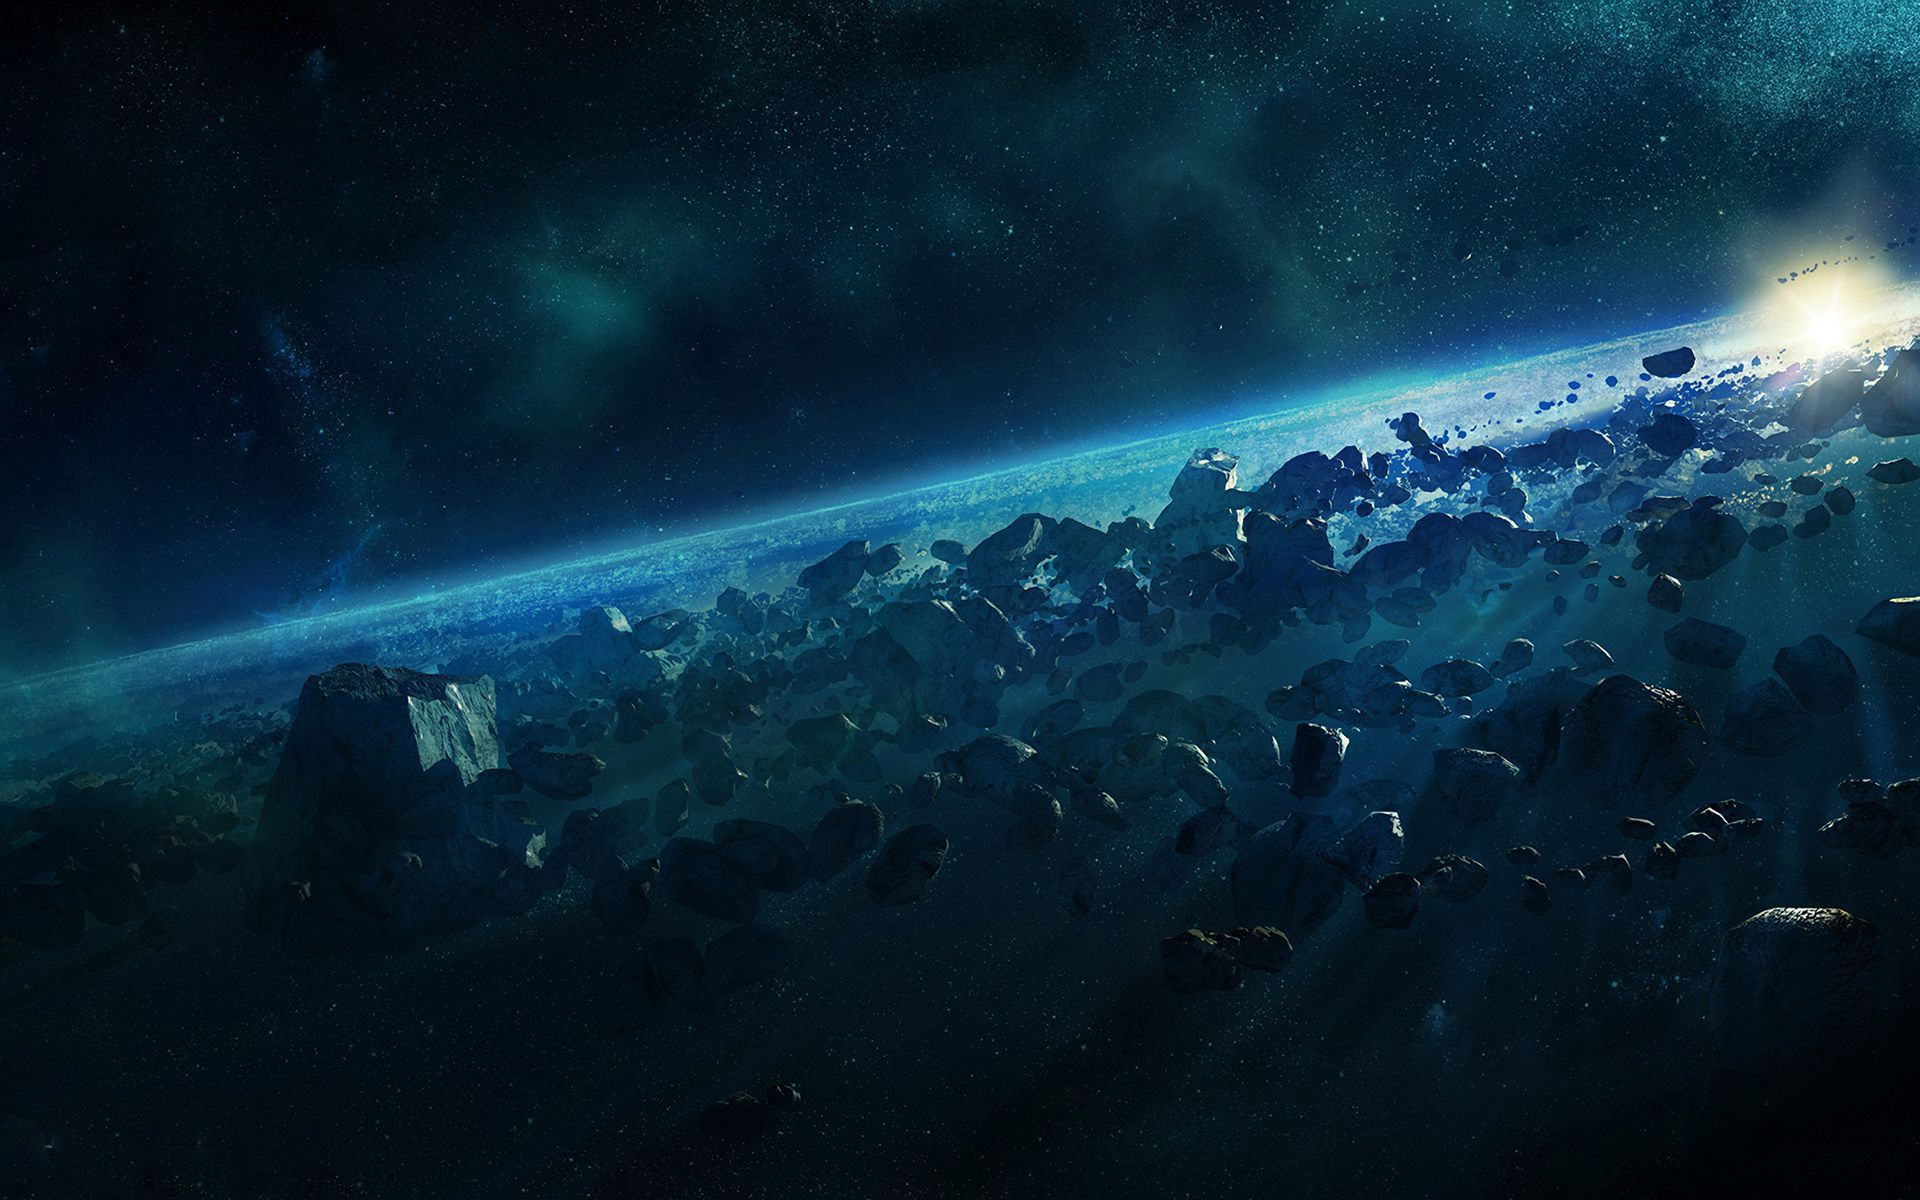 Asteroid Belt Wallpaper Pack